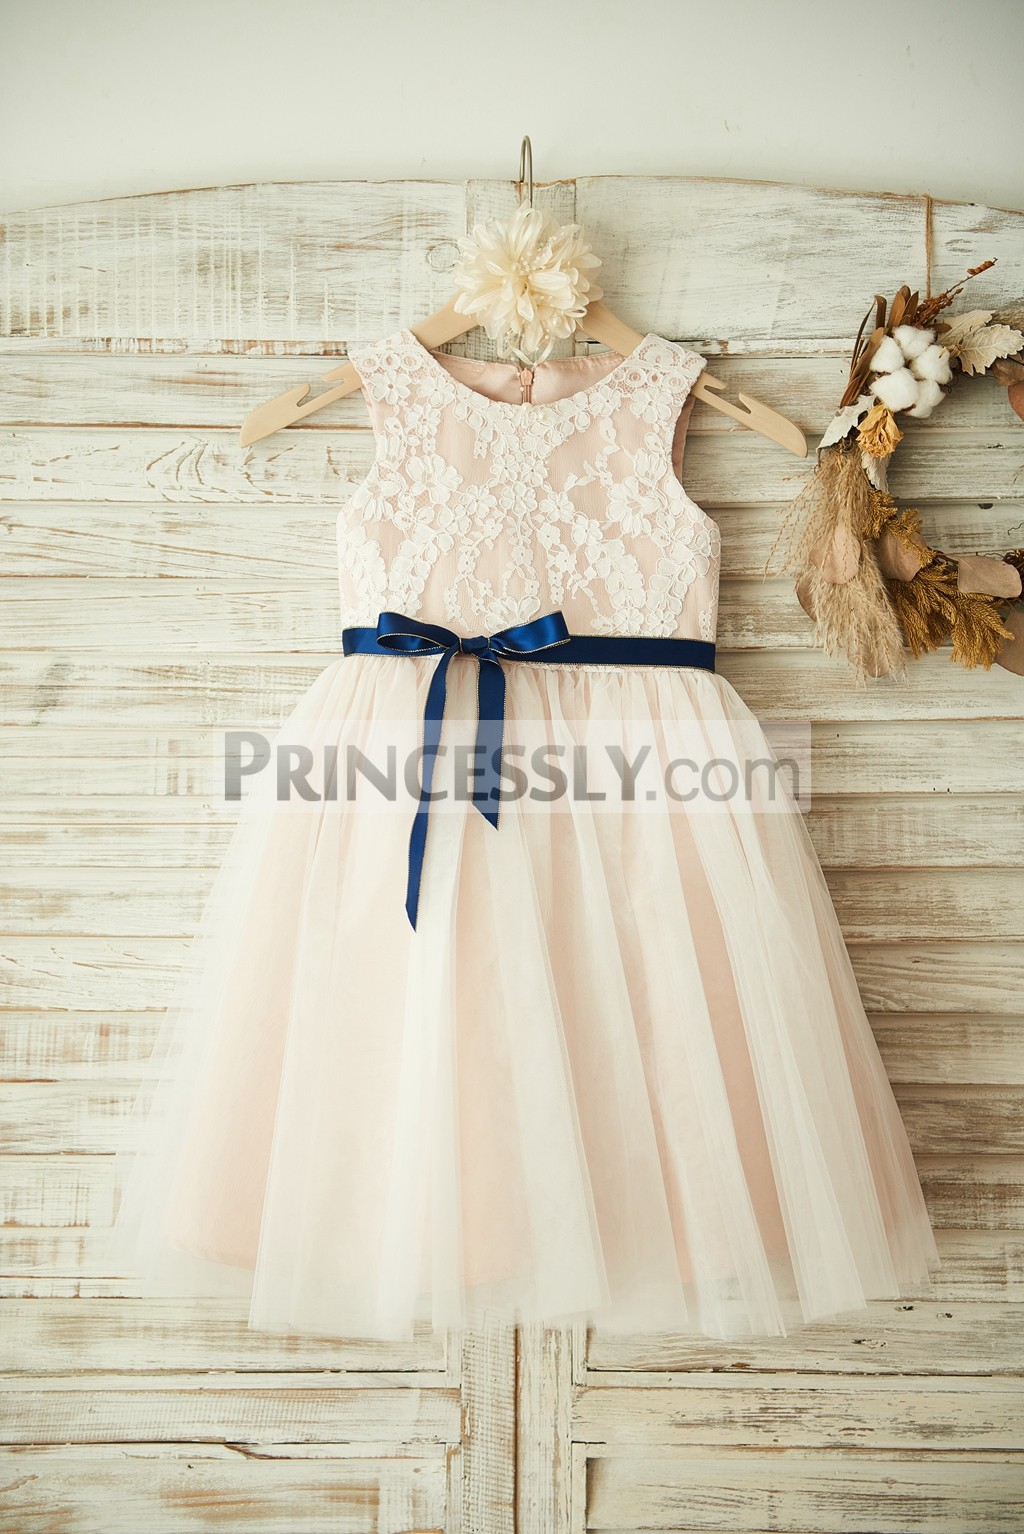 Ivory Lace Tulle Pink Lining Flower Girl Dress With Navy Blue Sash